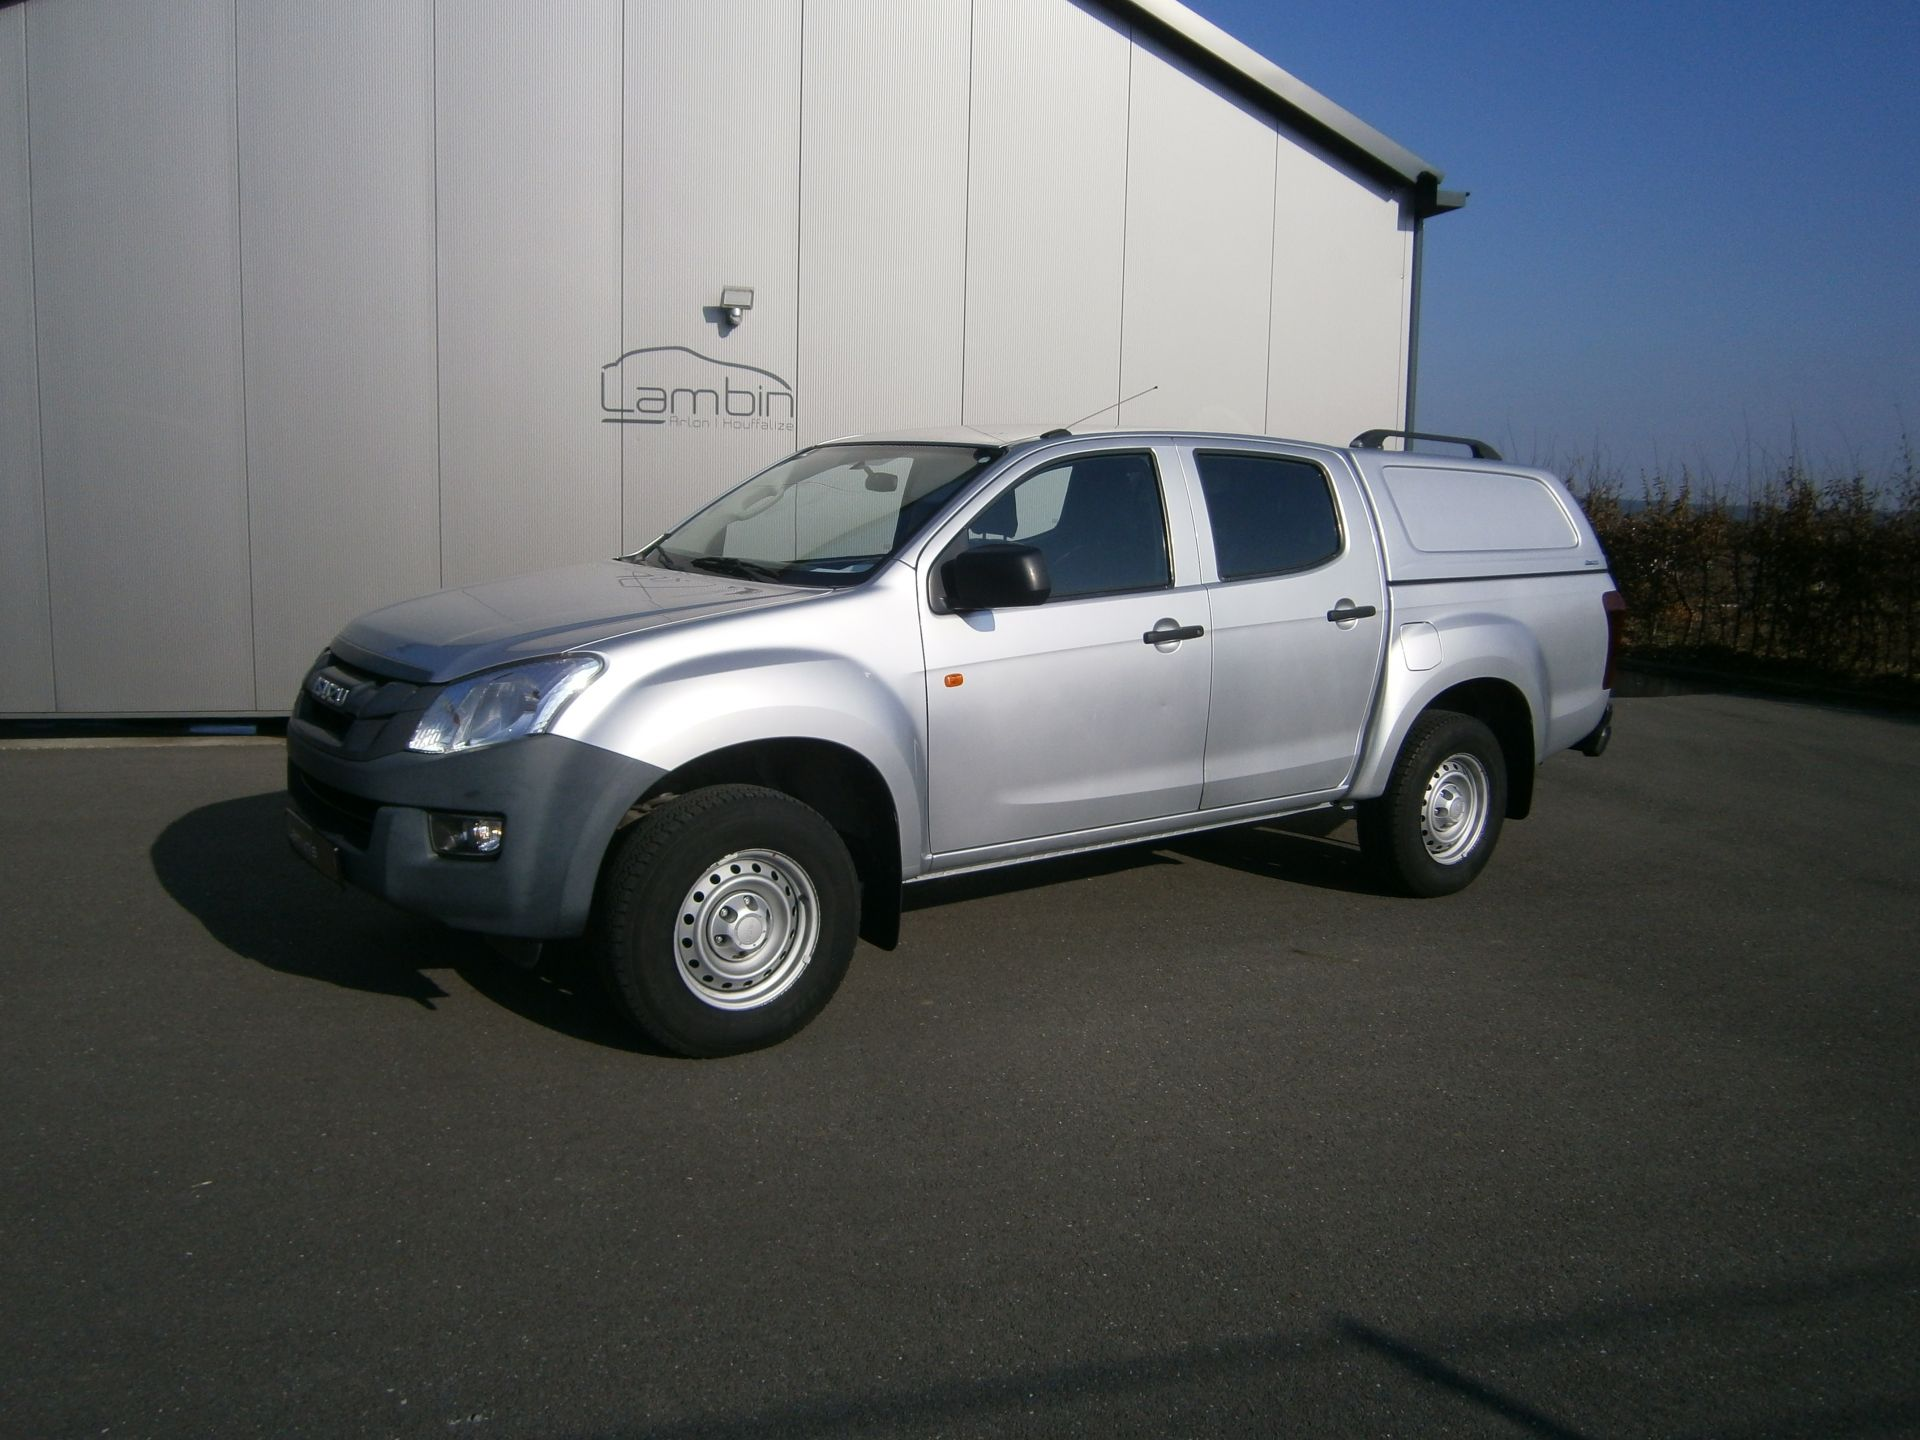 ISUZU D-MAX occasion TWIN TURBO DOUBLE CABINE CUSTOM 4WD 2500 | 2015 | 4 portes Garage Lambin Houffalize